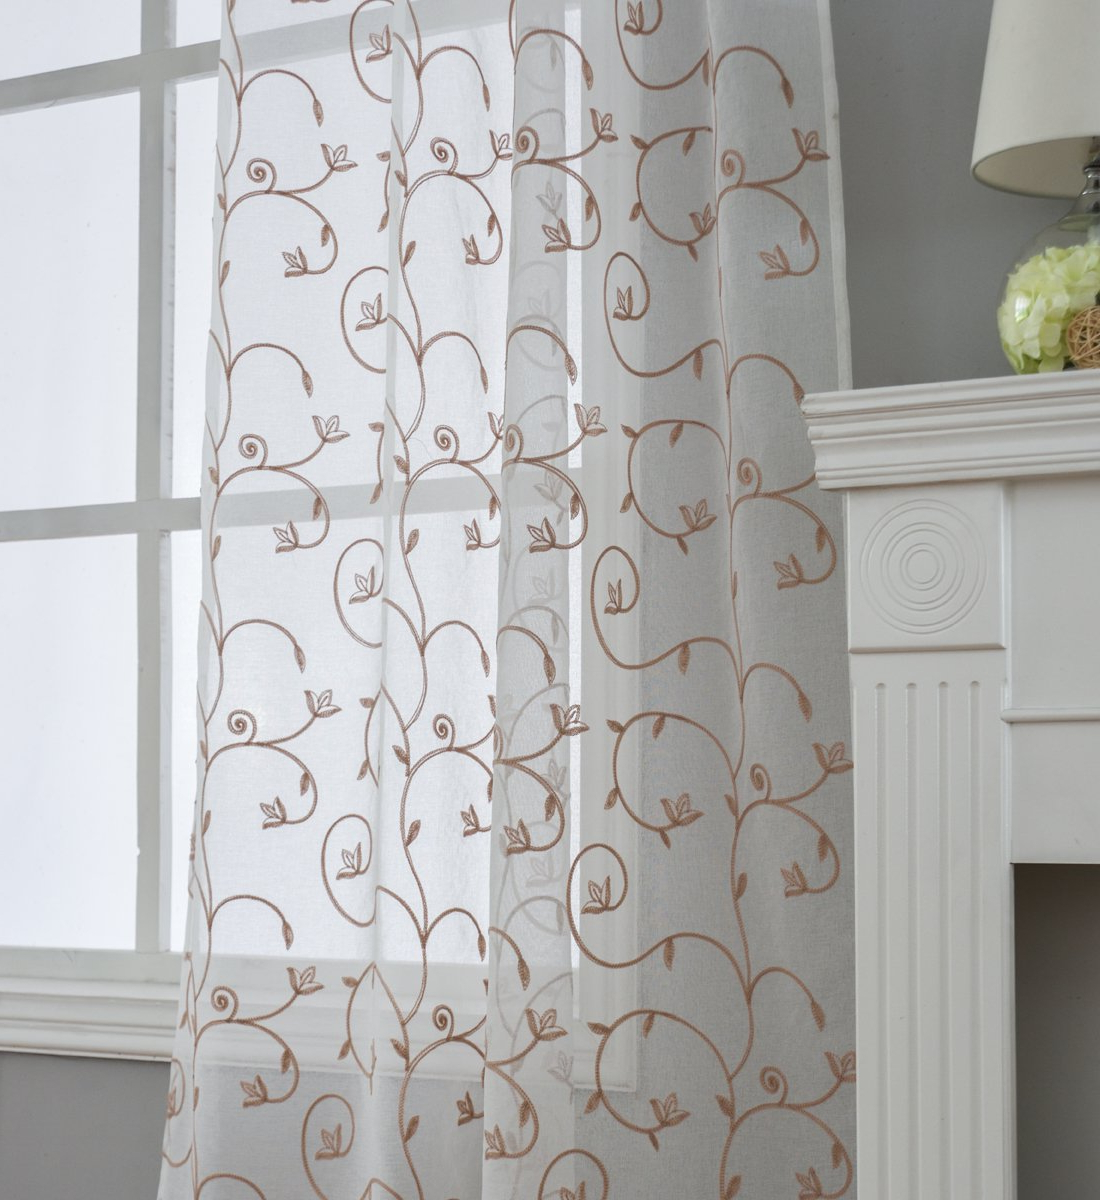 Favorite Overseas Leaf Swirl Embroidered Curtain Panel Pairs For Kotile Sheer Curtains For Living Room Curtain, Floral Embroidered 2 Panels Grommet Light Filtering Window Curtains For Sliding Glass Door Curtains, (View 16 of 21)